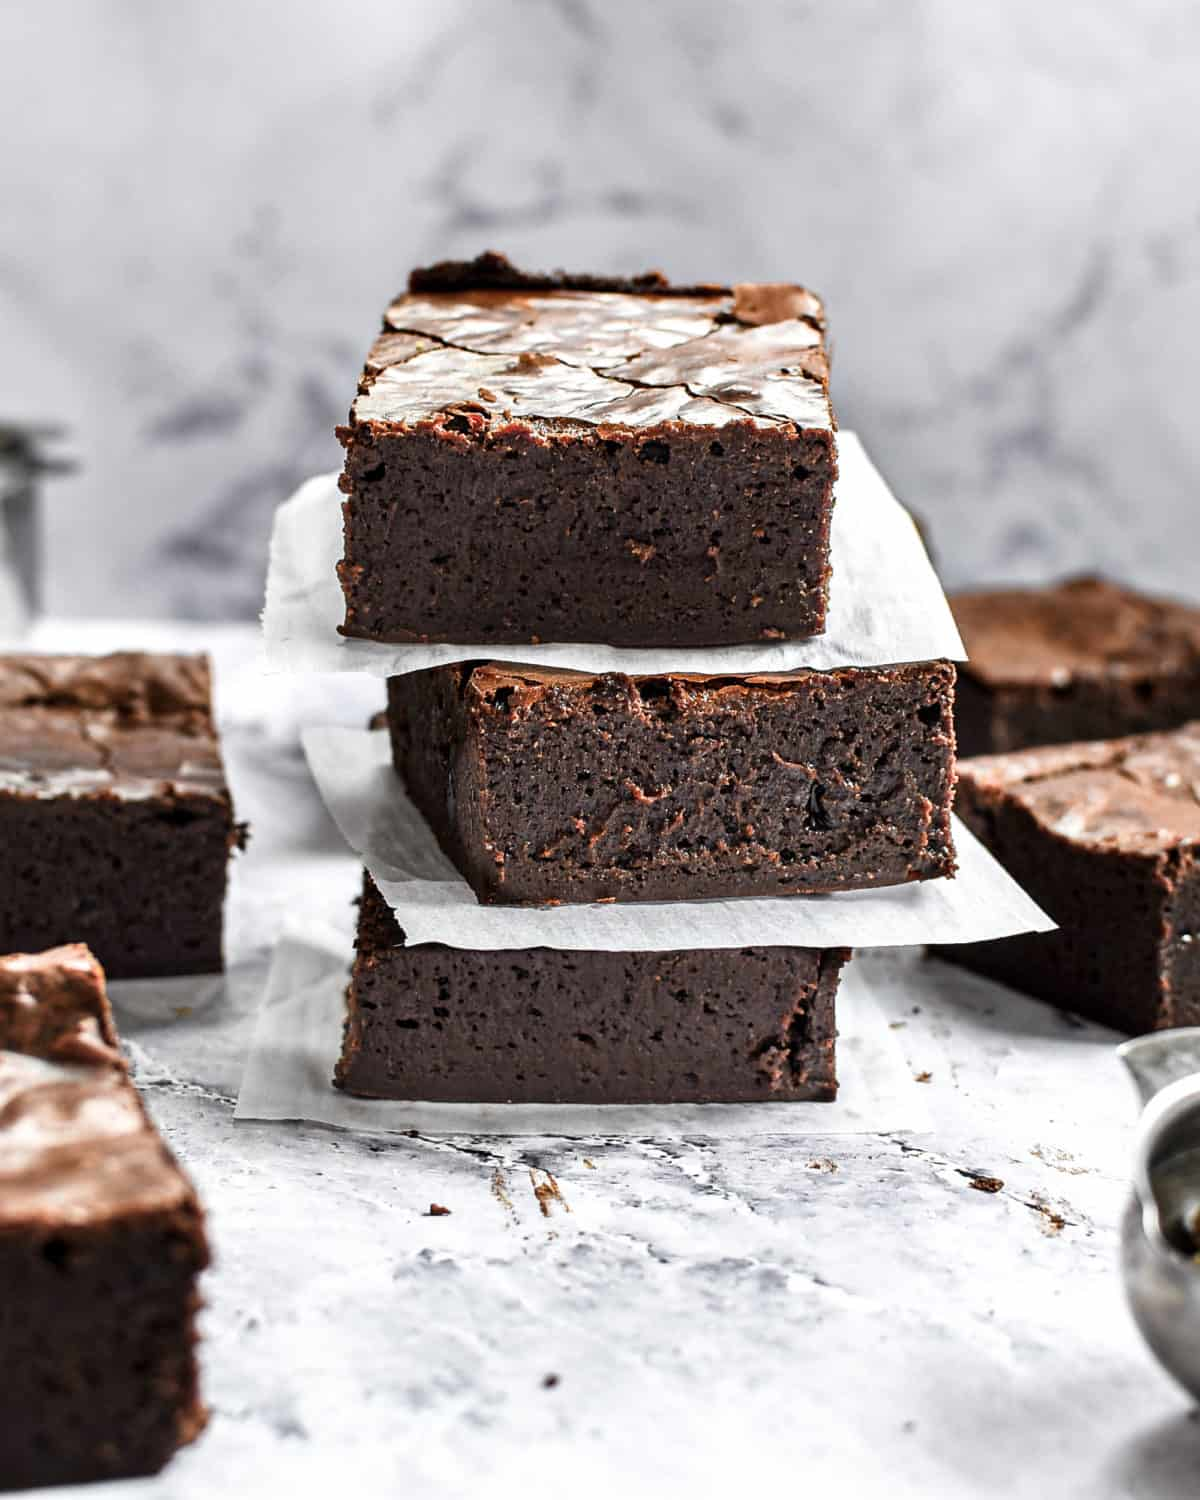 A stack of three brownies on top of each other.